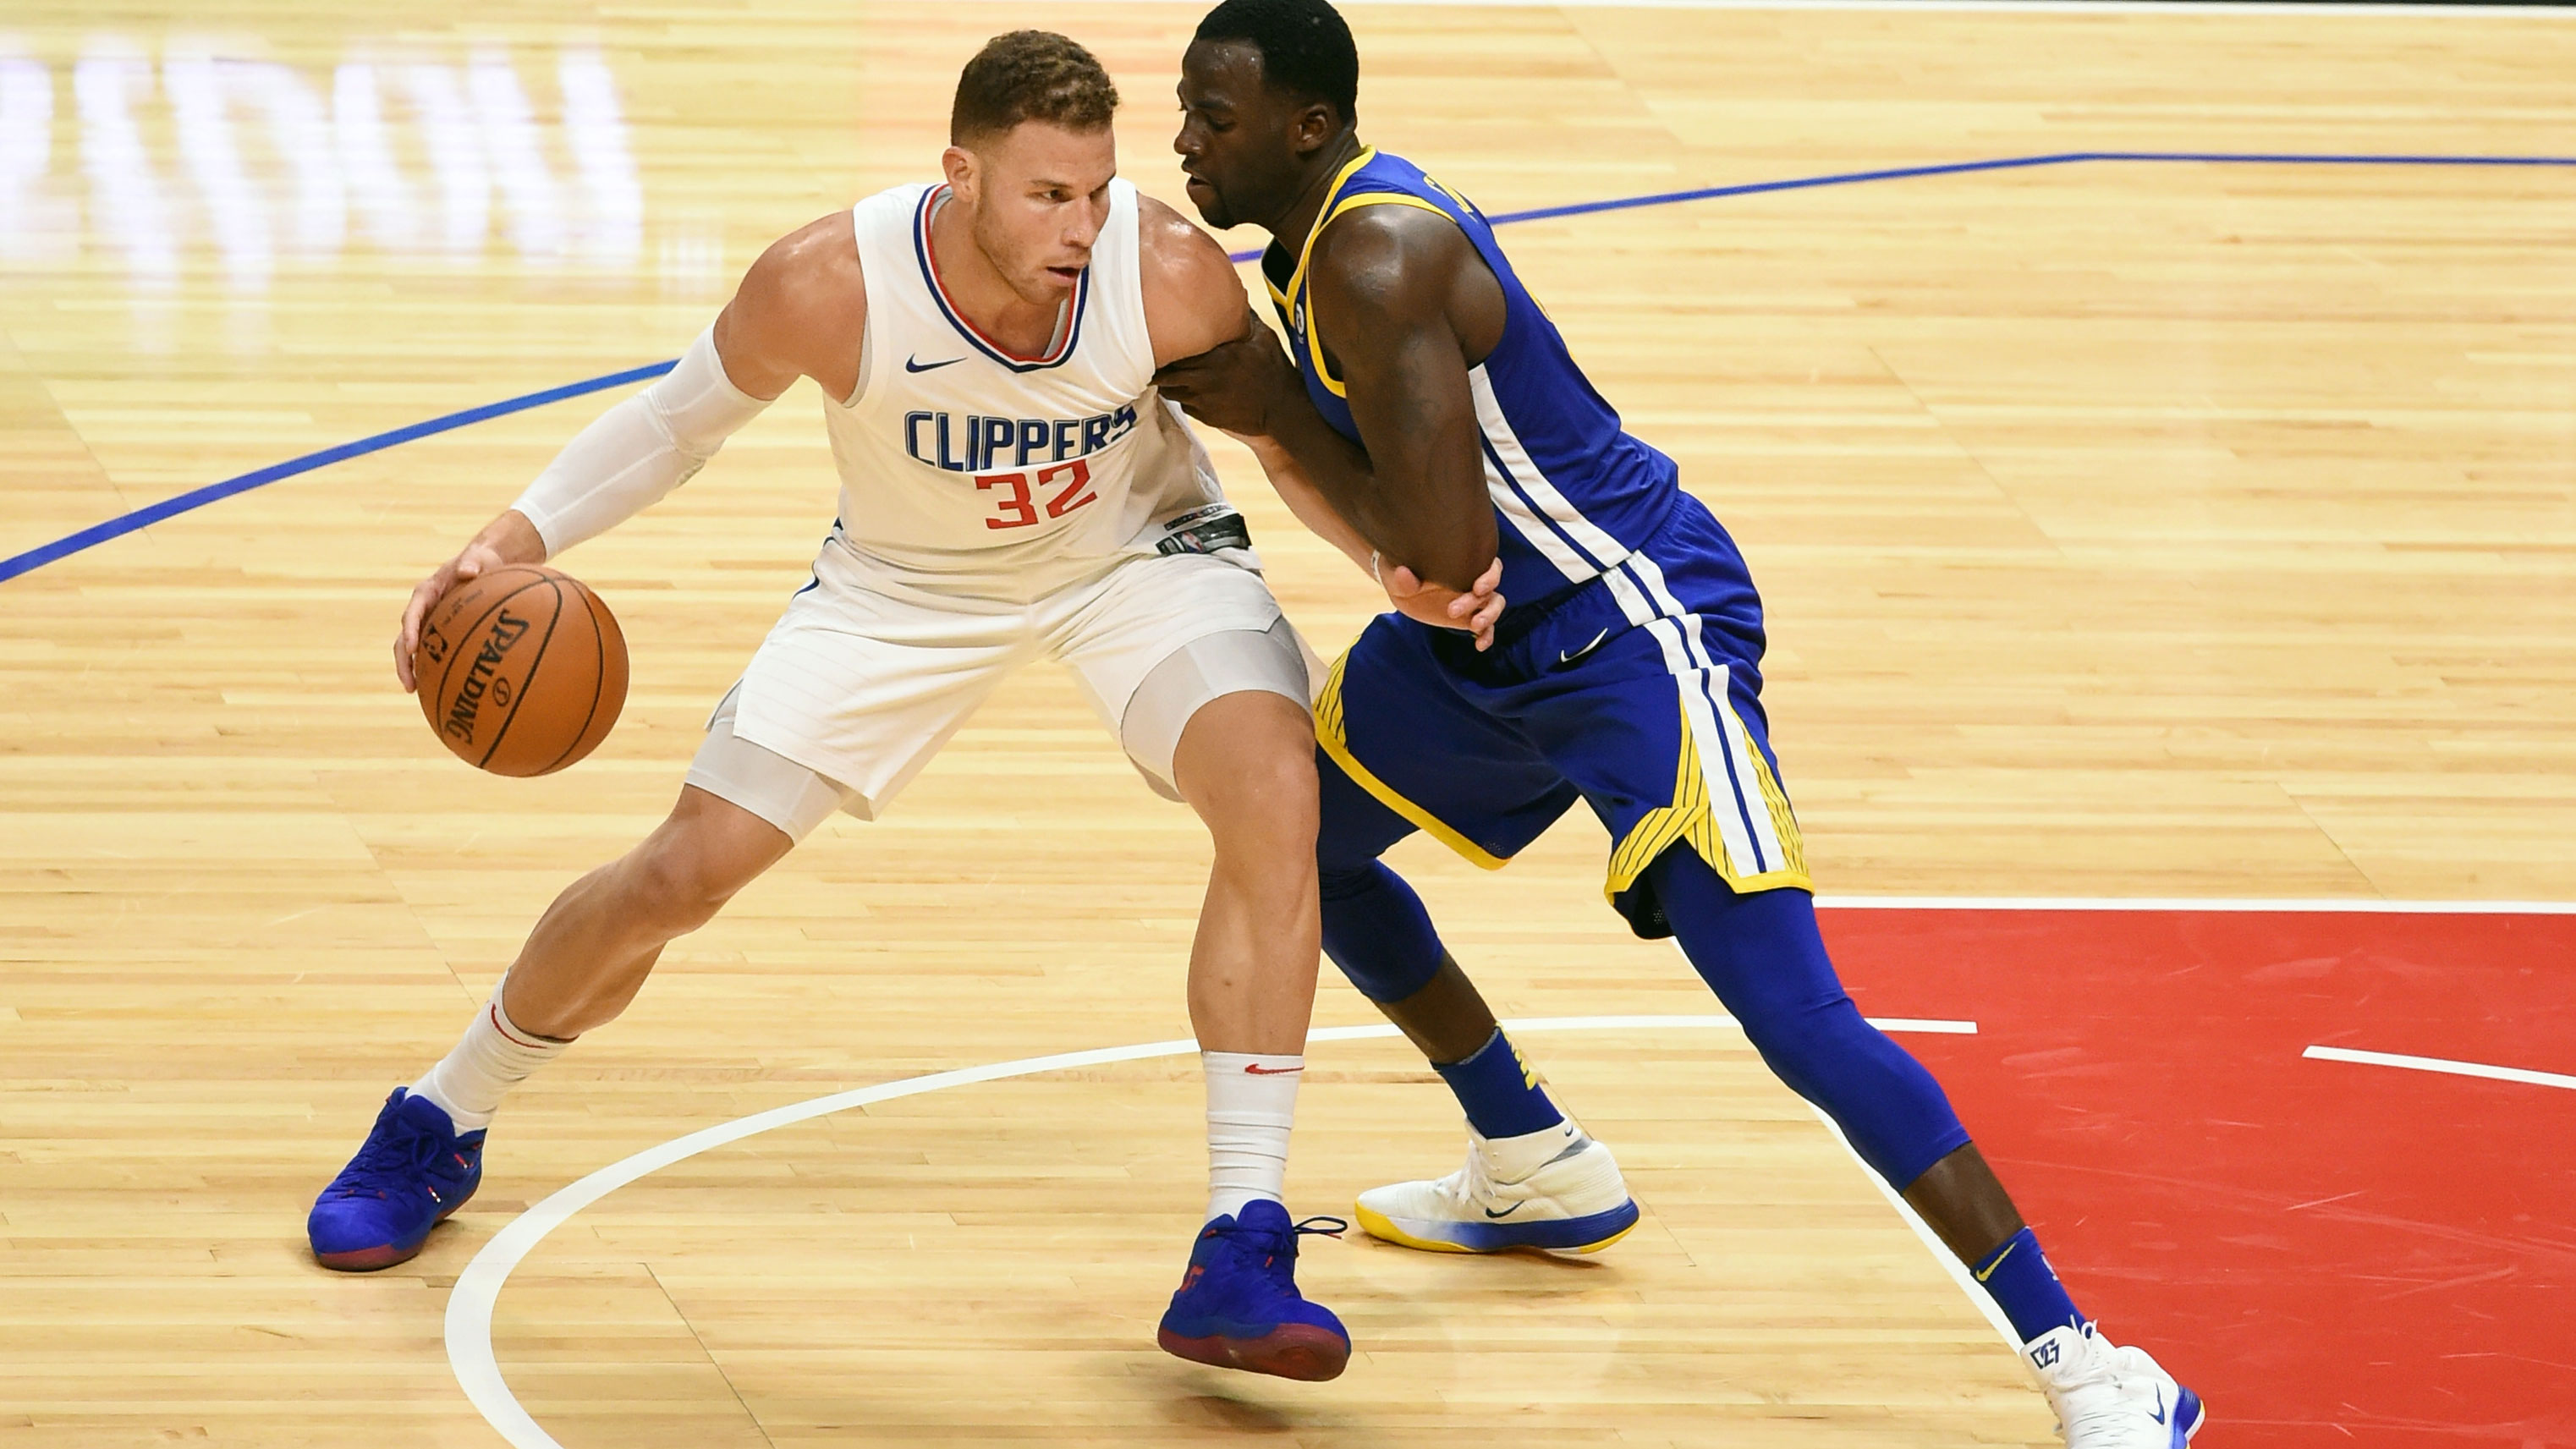 NBA: OCT 30 Warriors at Clippers